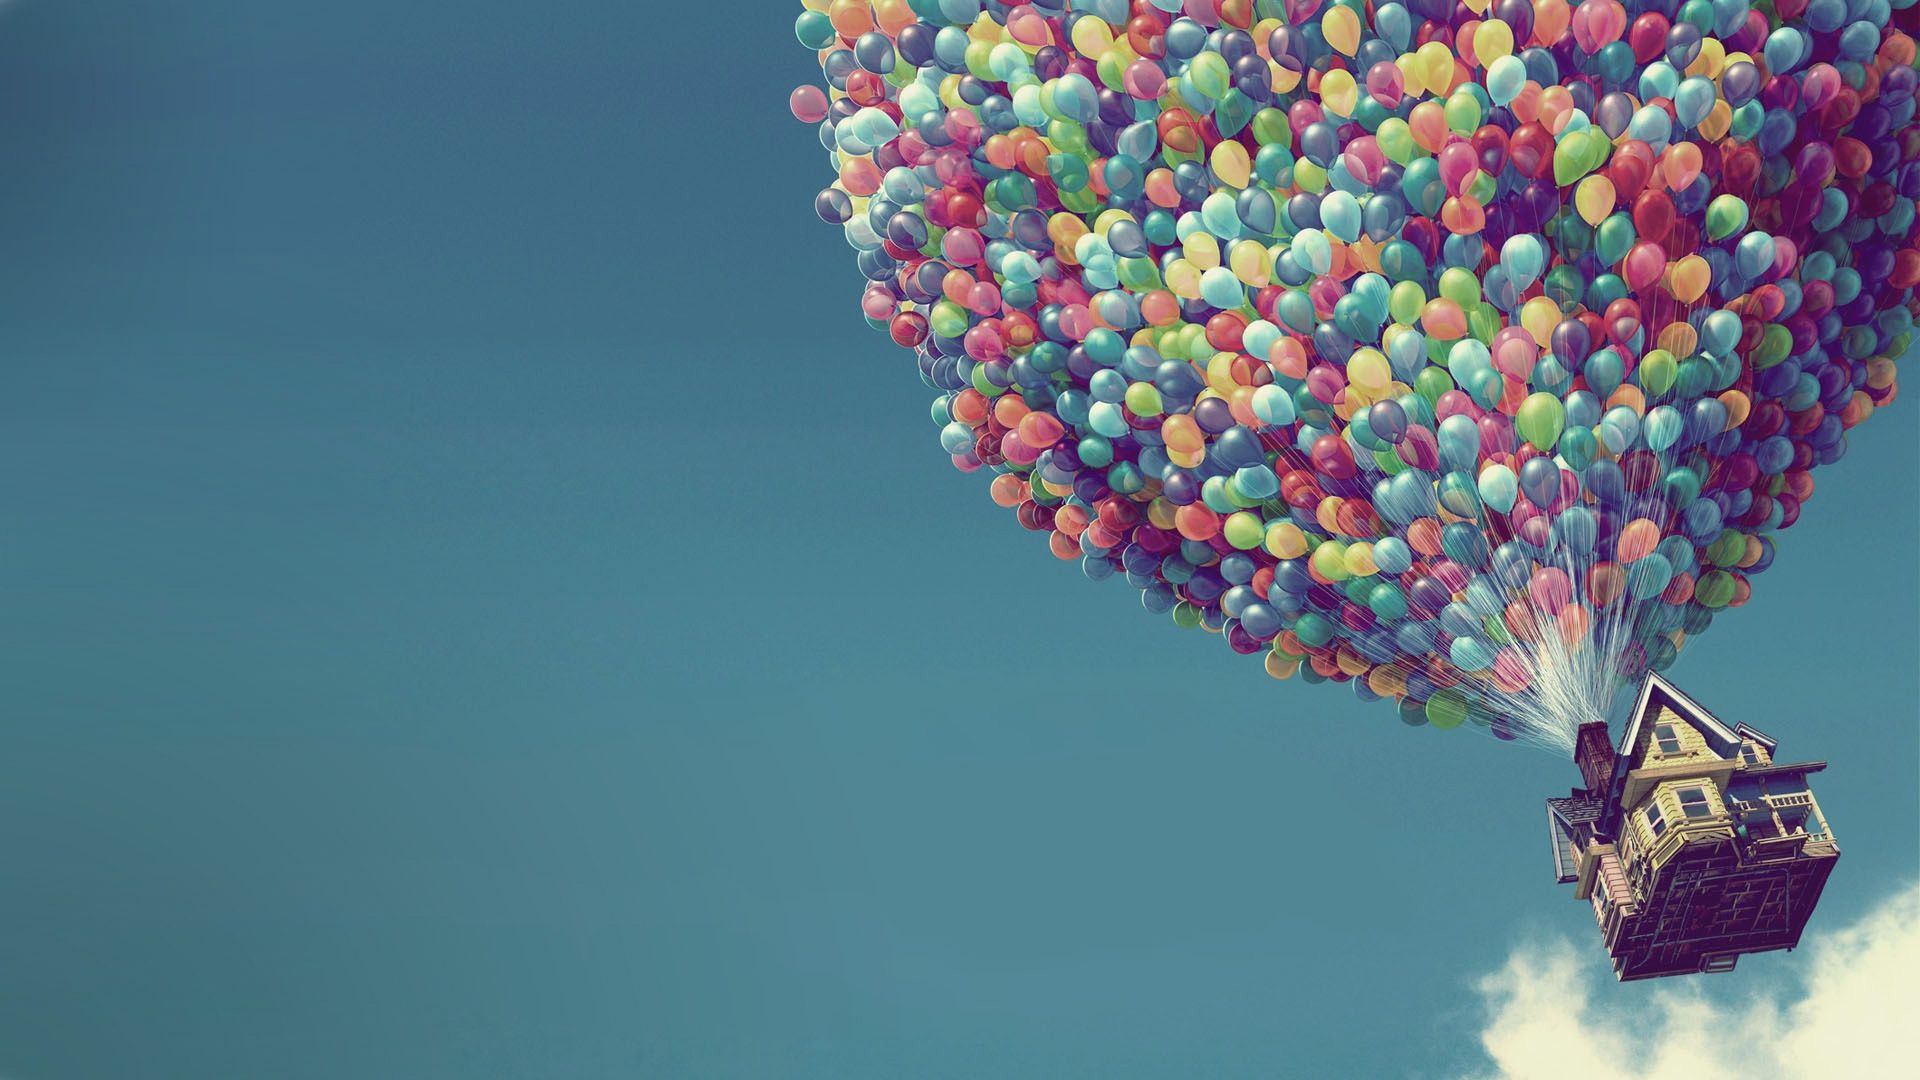 Up Balloons Wallpaper Disney Desktop Wallpaper Disney Collage Desktop Wallpapers Tumblr